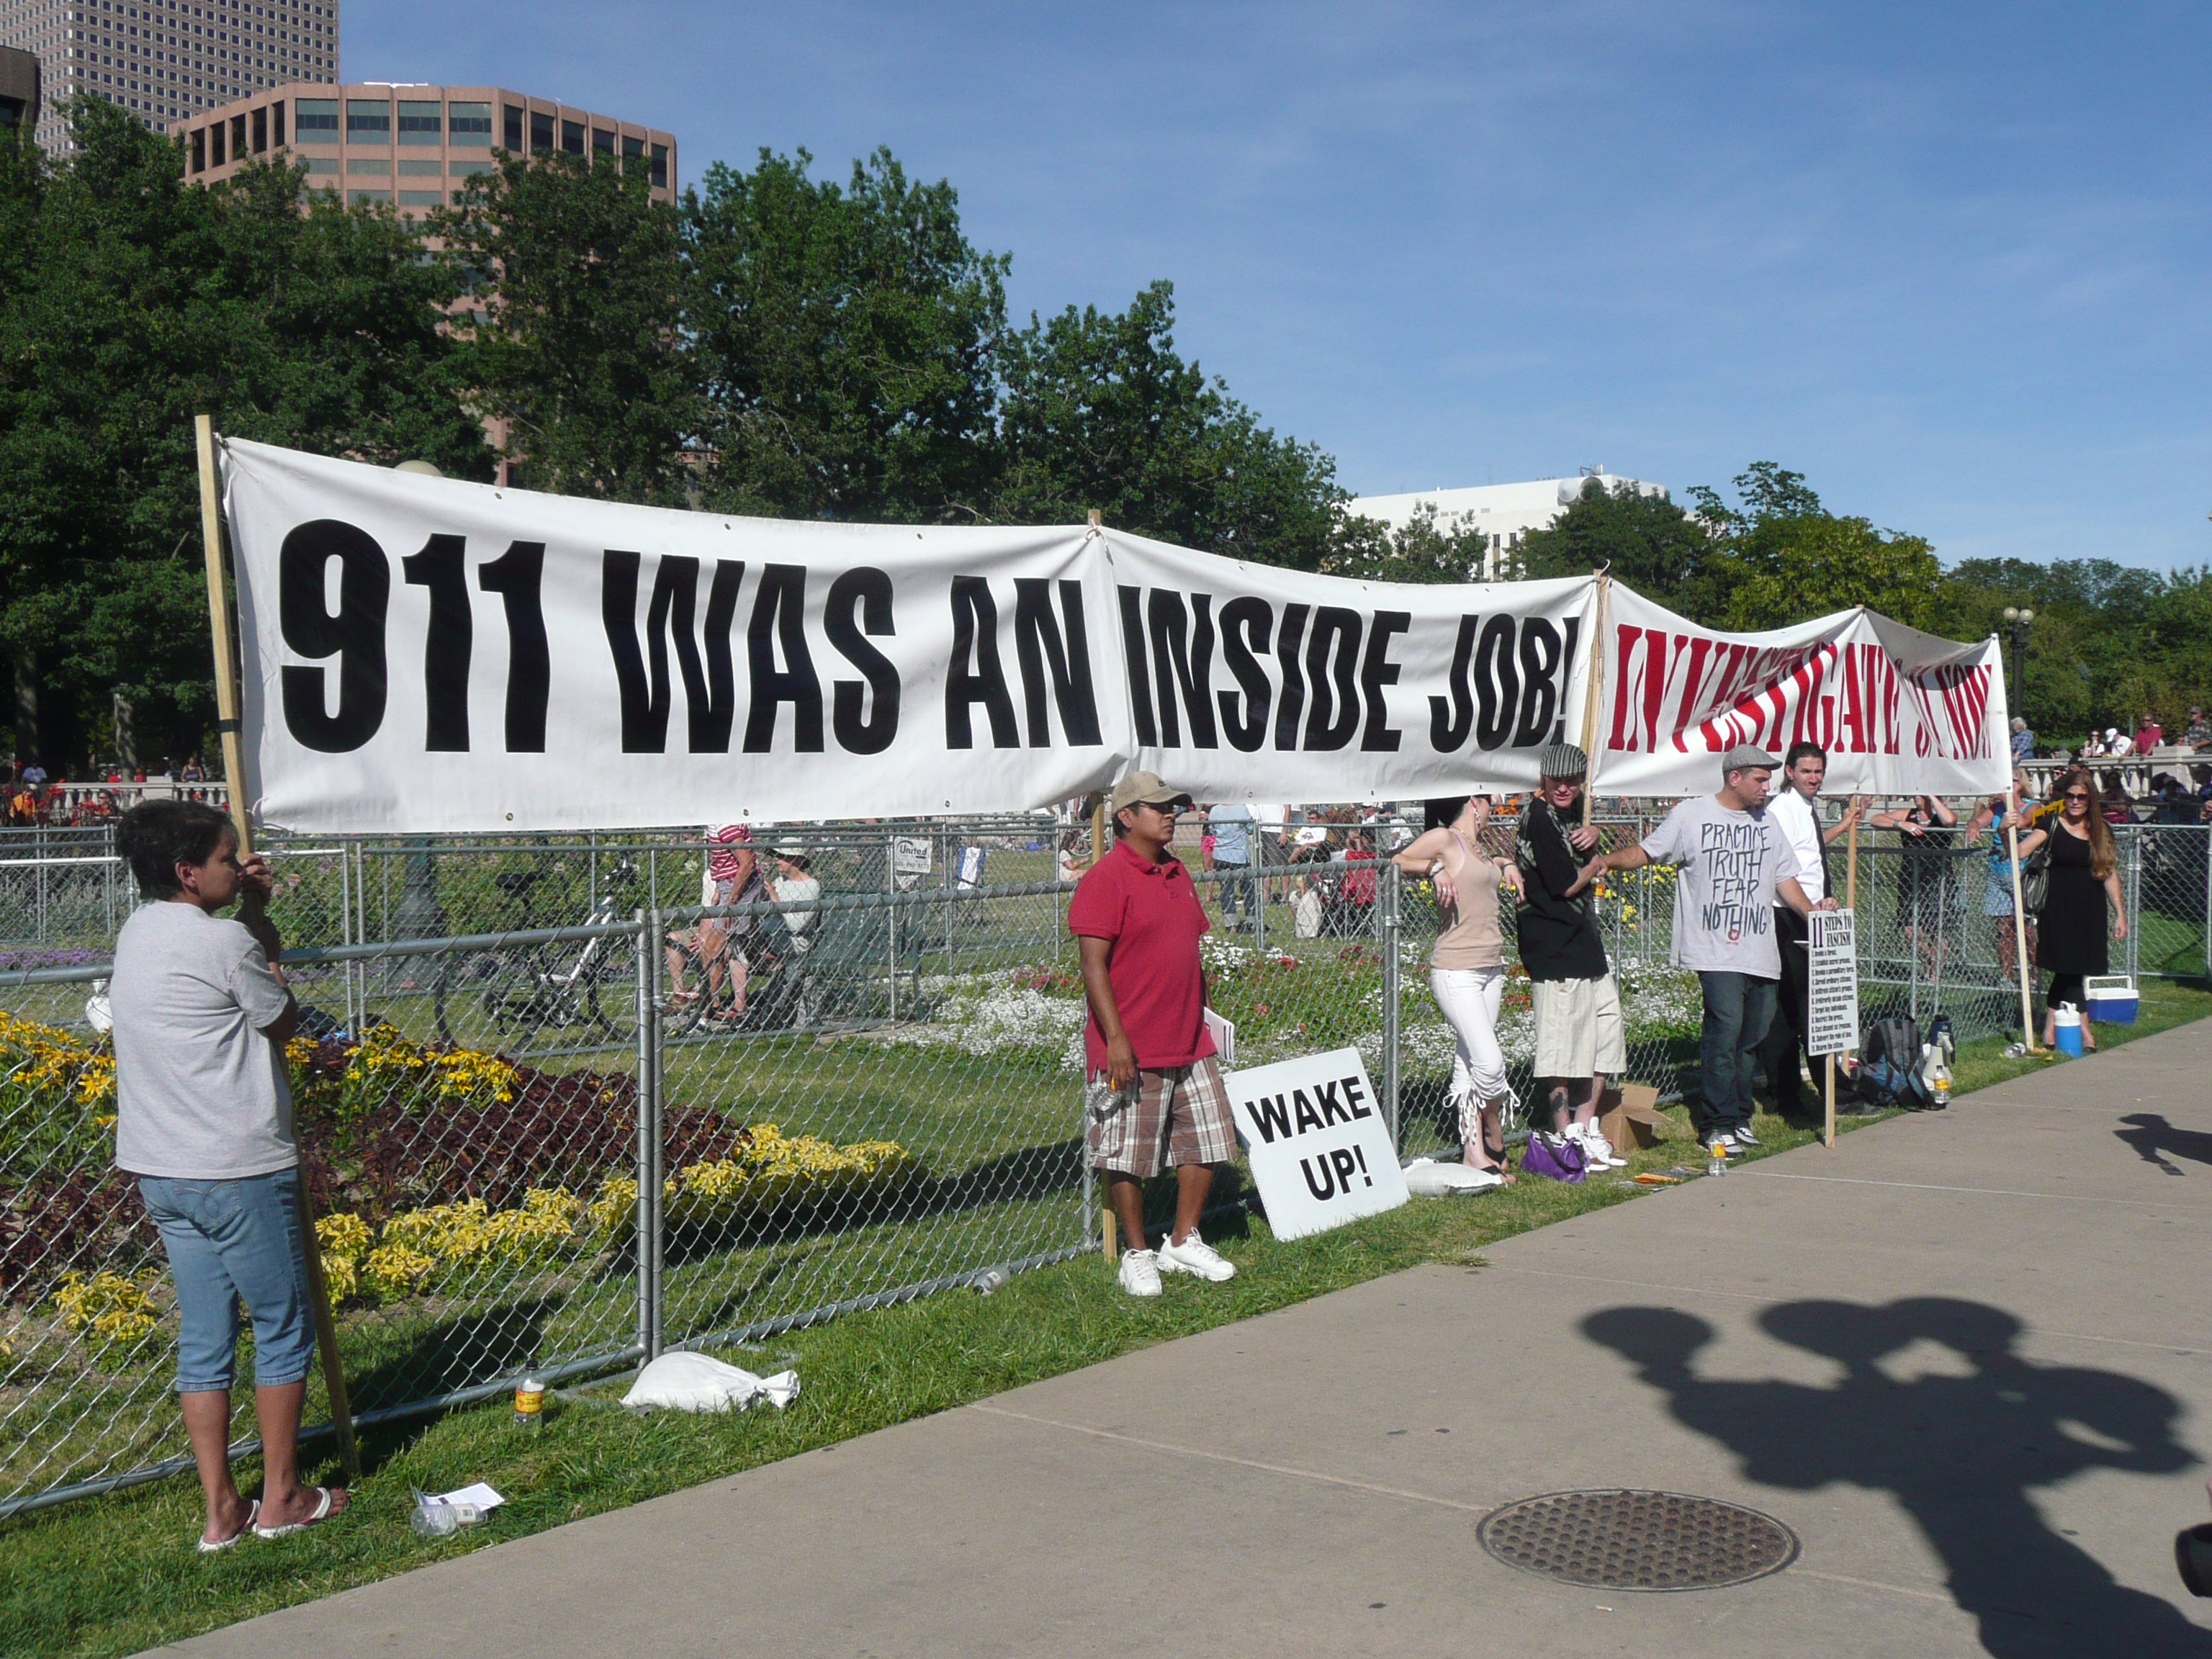 persuasive 911 conspiracy After ten years, the pesky 911 truth movement has refined its arguments but still hasnt proved the attacks were an inside job their key claims are refuted on multiple grounds.